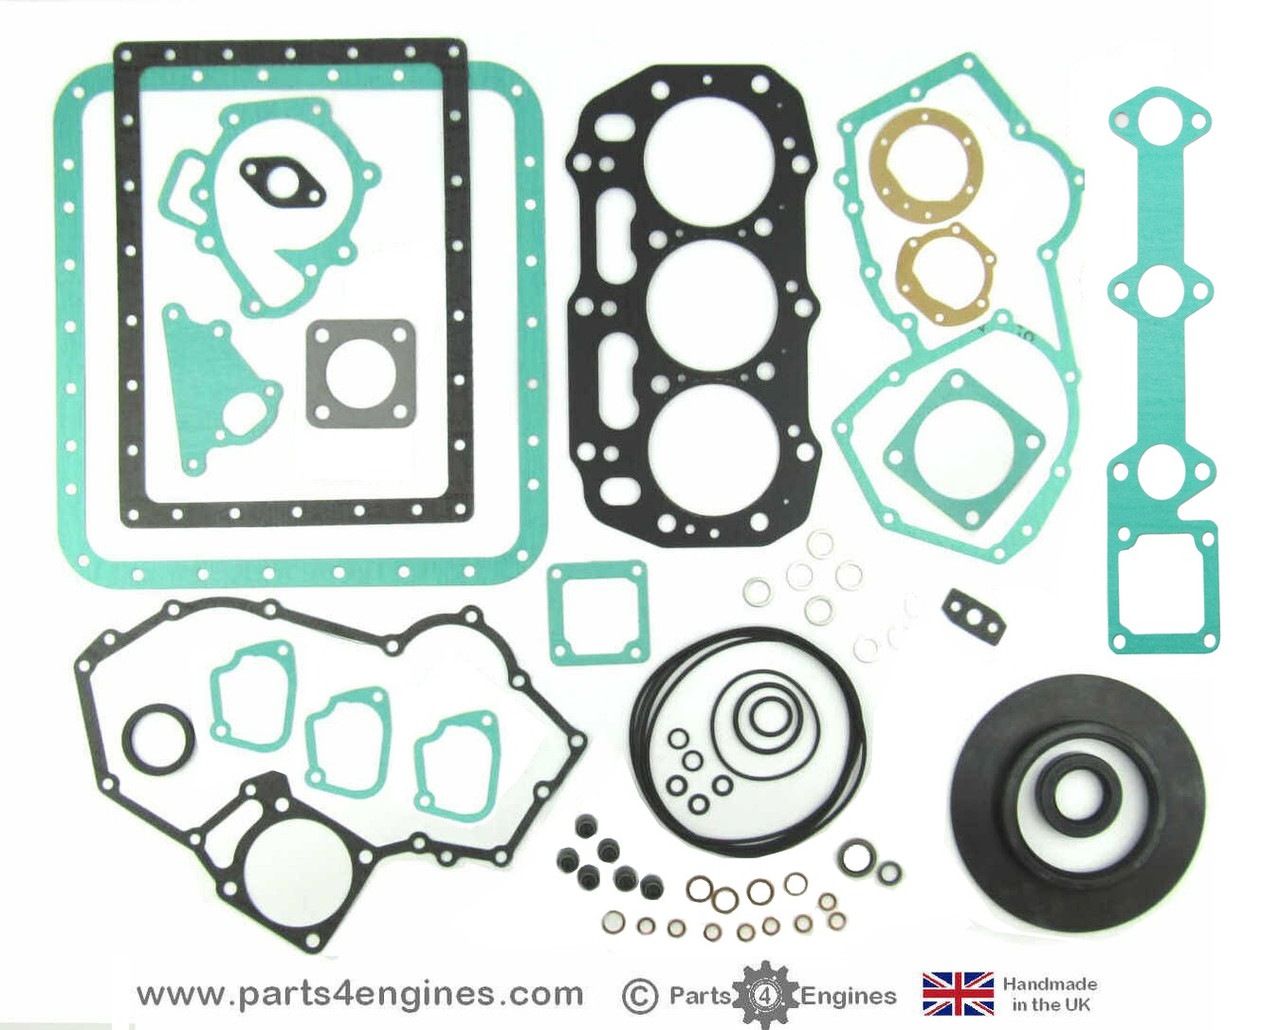 Perkins Perama M35 Complete gasket and seal set - parts4engines.com  (with rear oil seal)